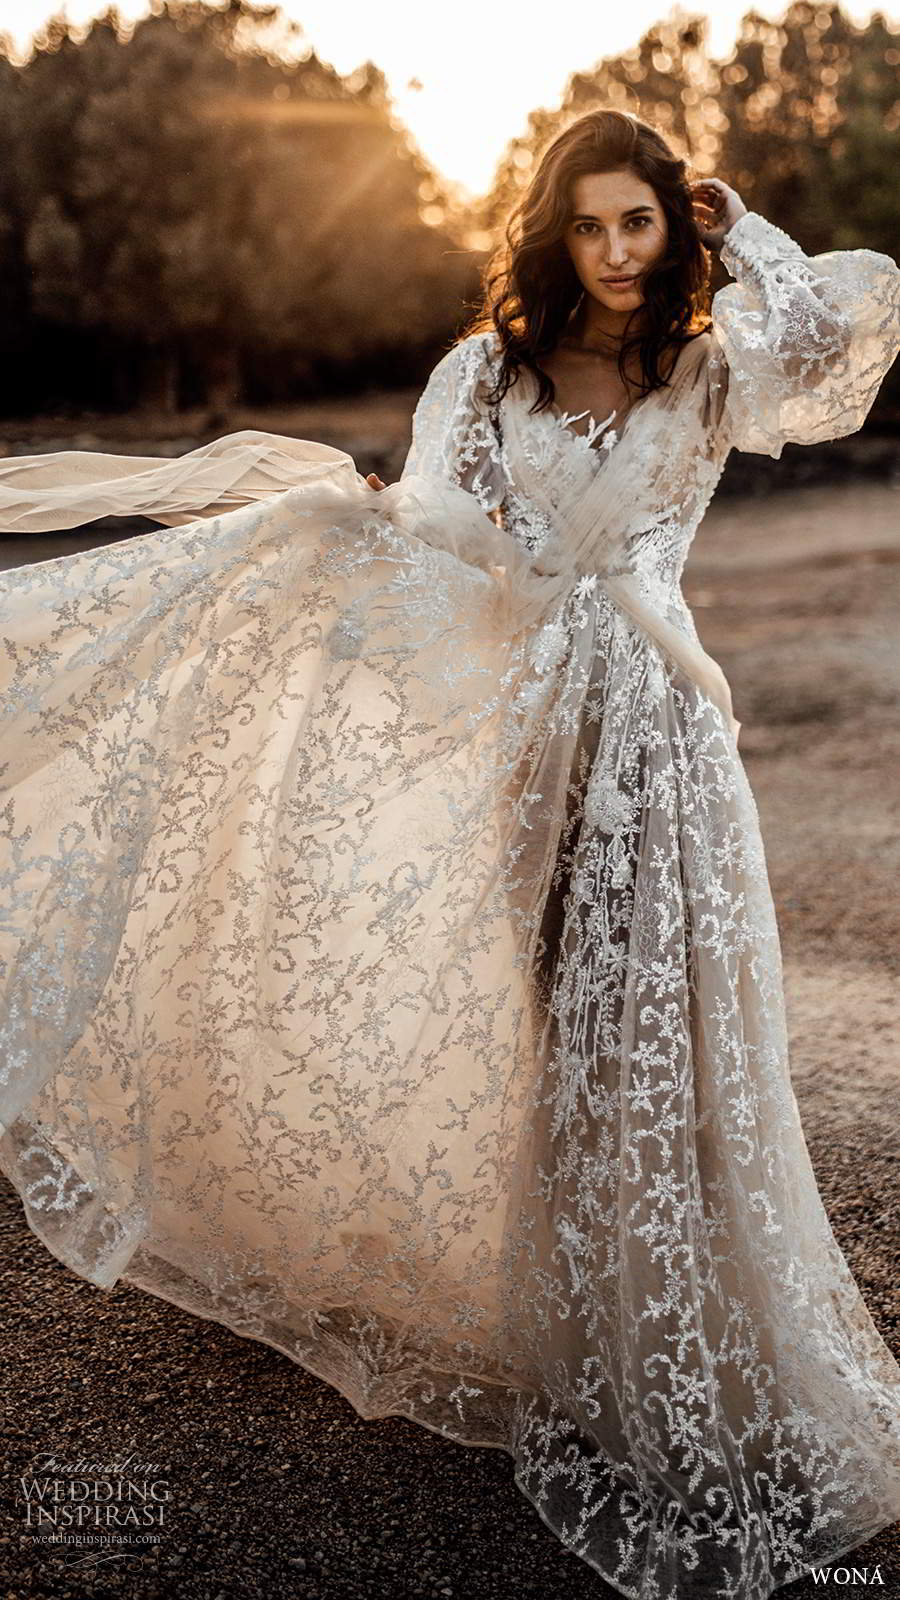 wona fall 2020 bridal illusion long poet sleeves crossover v neckline fully embellished lace a line ball gown wedding dress chapel train (4) mv